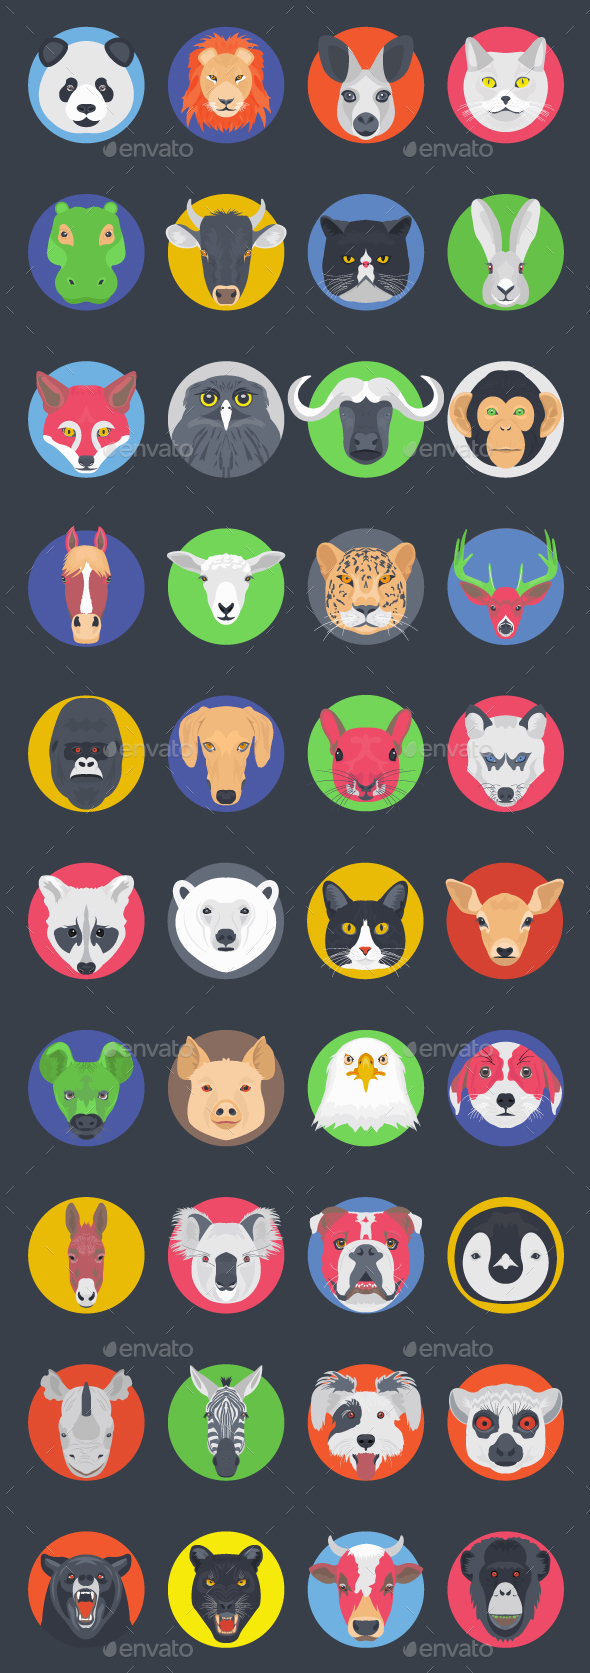 GraphicRiver 40 Flat Animal Avatars 20997975